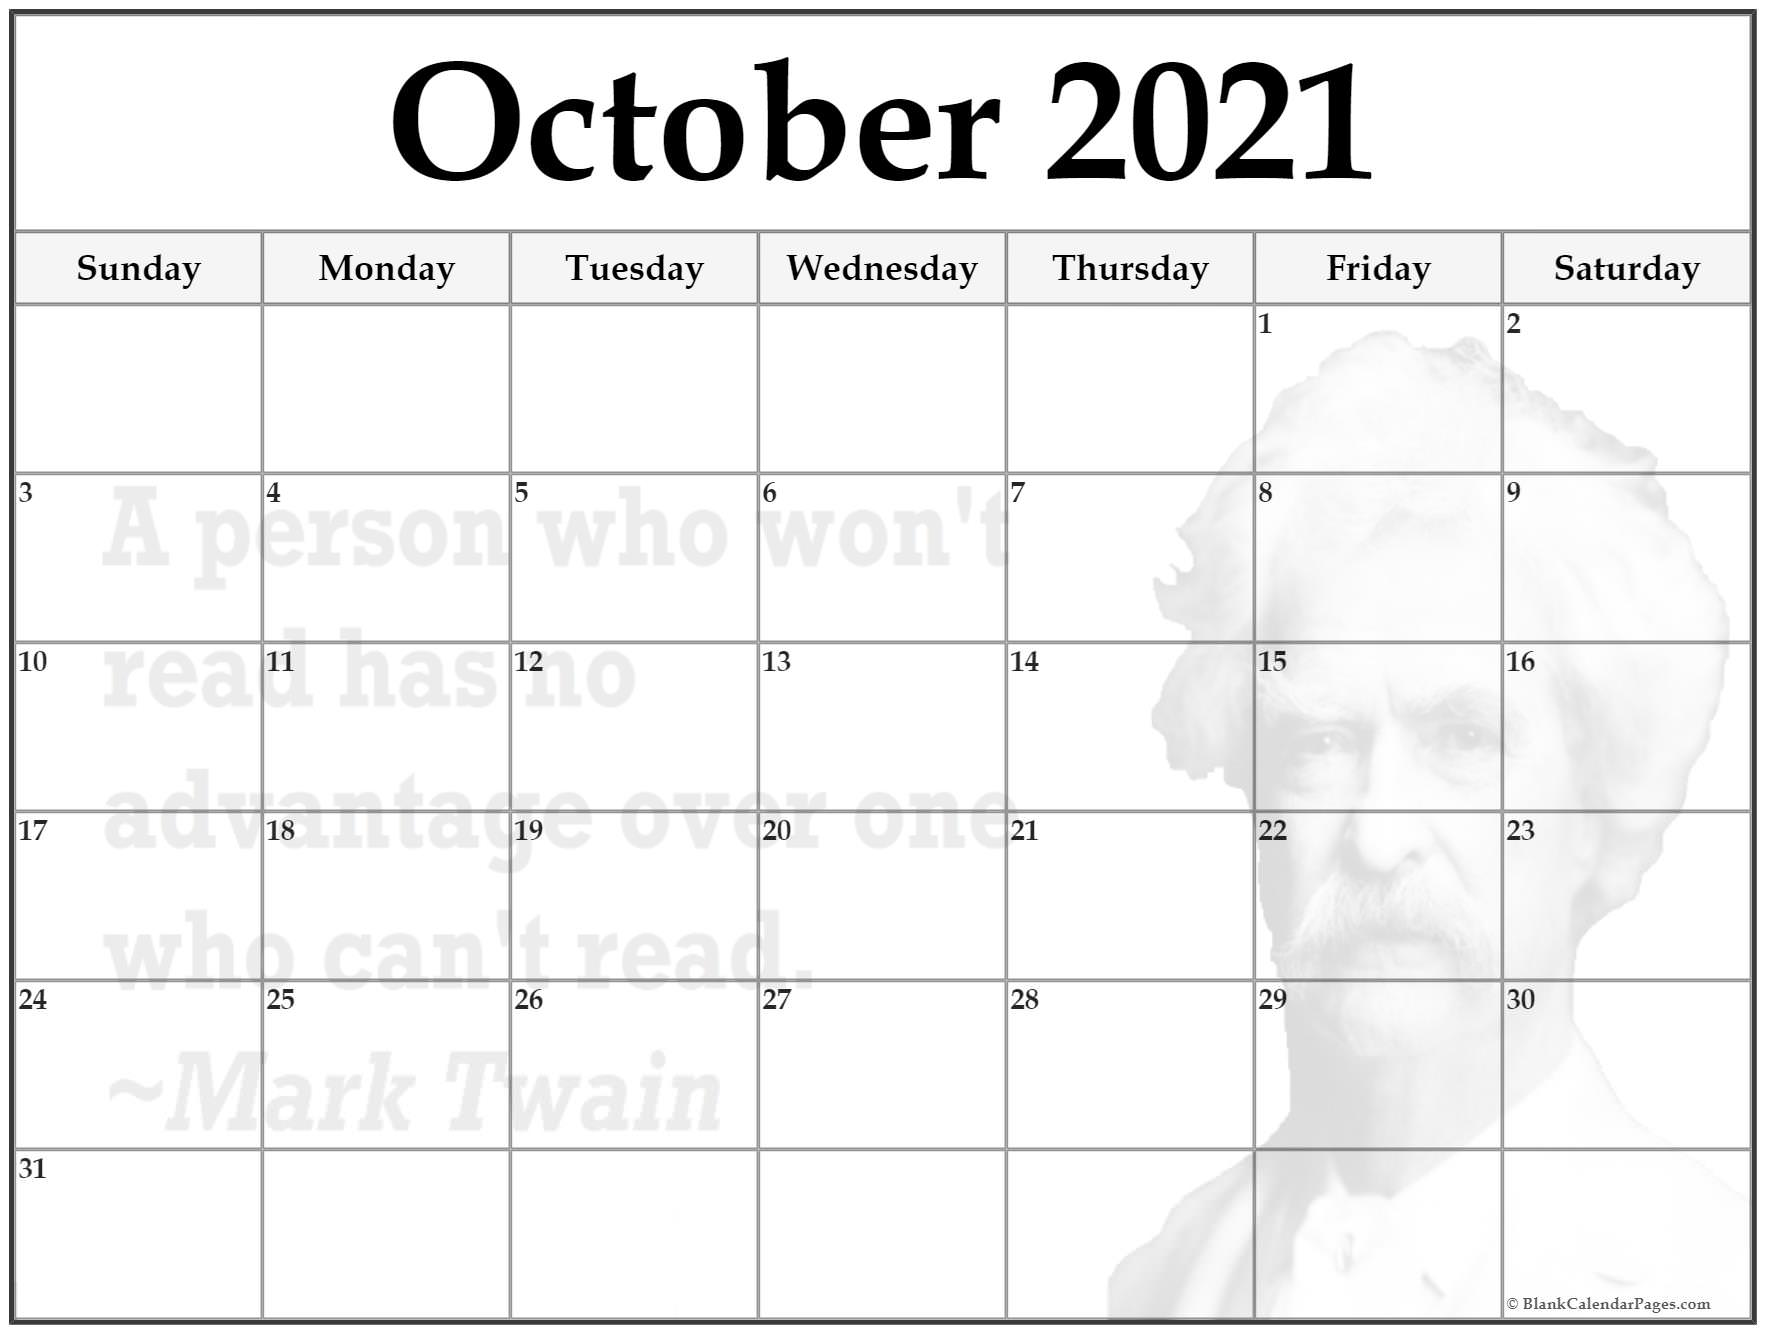 October 2019 printable quote calendar template. A person who won't read has no advantage over a person who can't read. ~Mark Twain